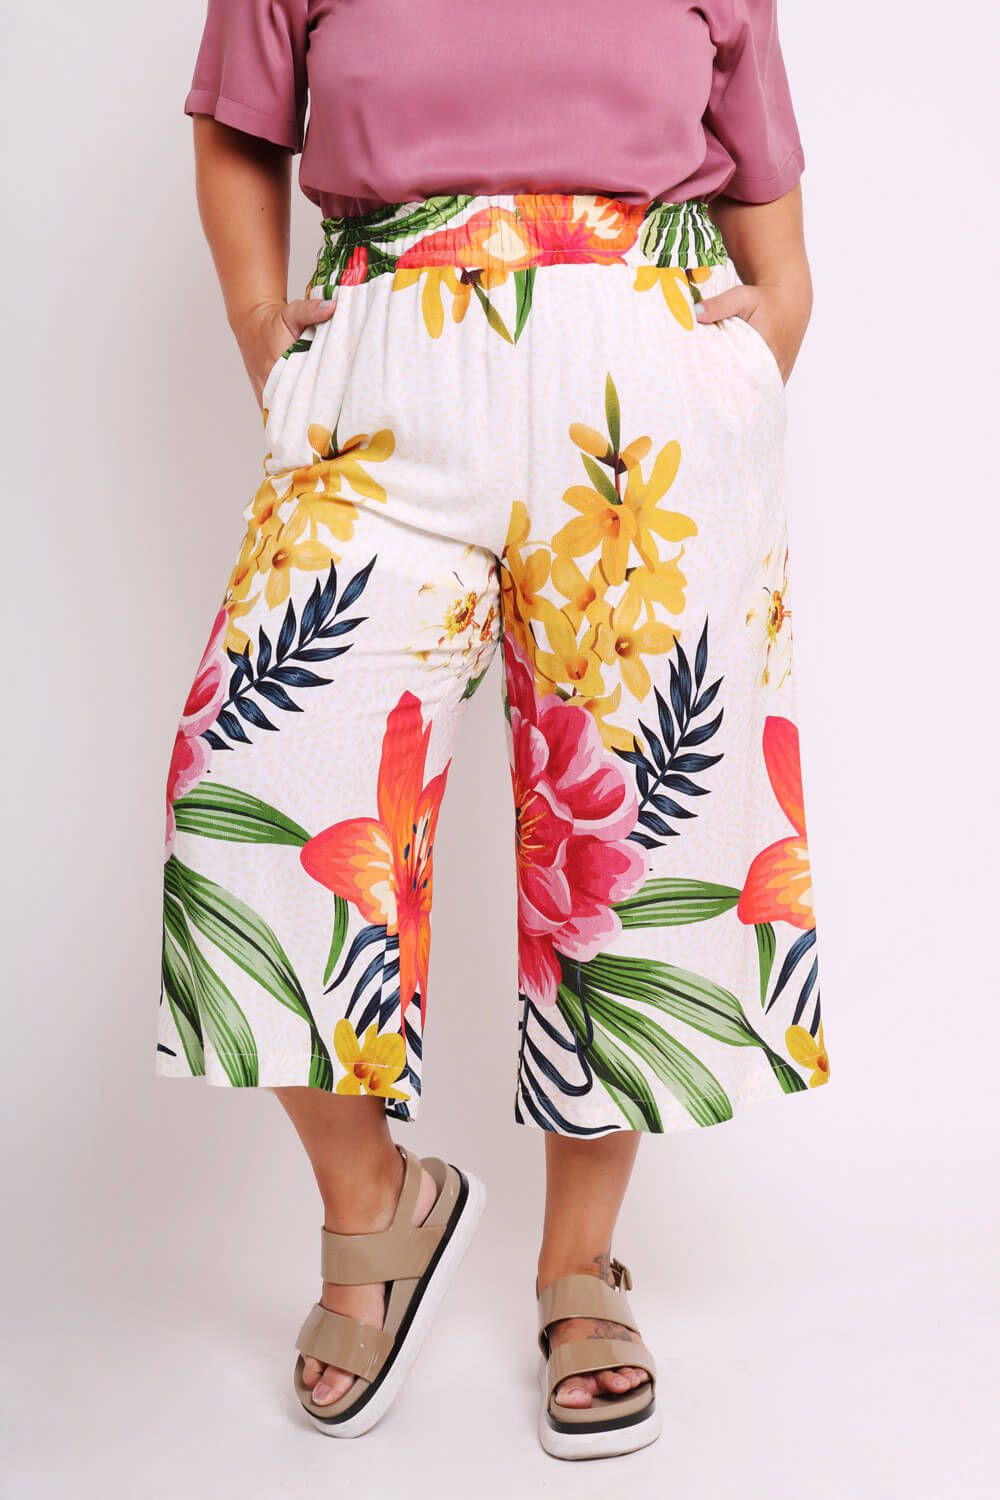 PANTACOURT PLUS SIZE ESTAMPADA DANÇA DAS FLORES OFF WHITE